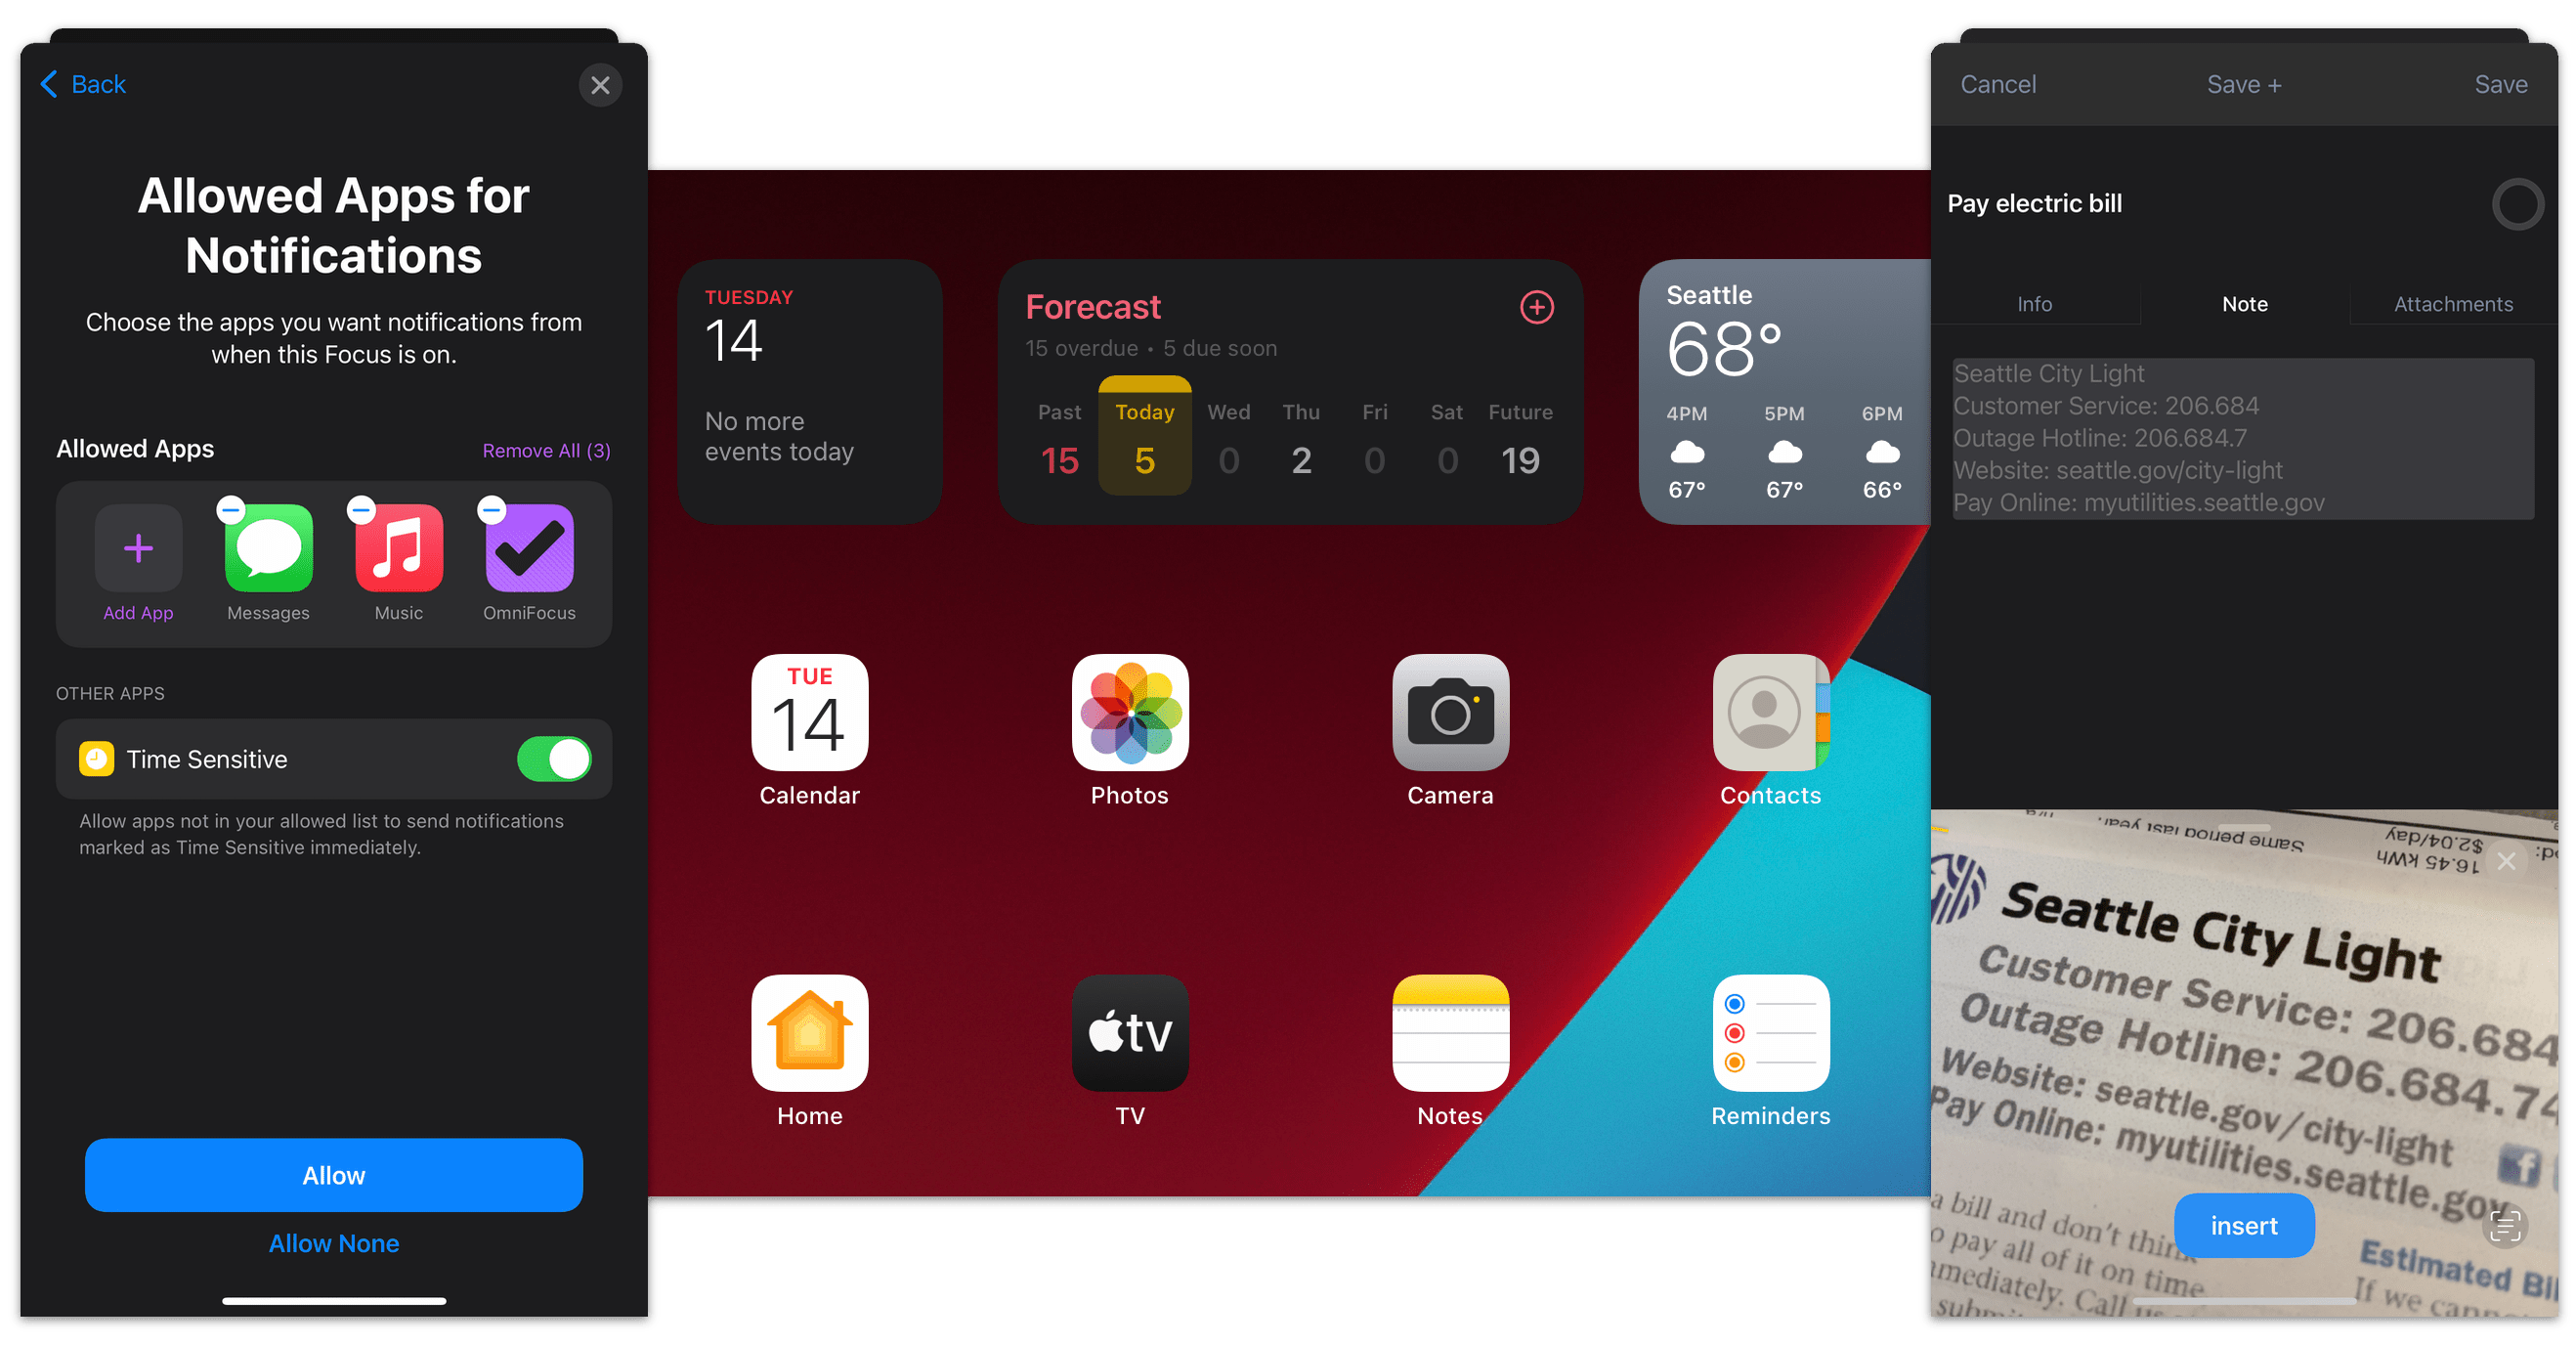 OmniFocus 3 for iOS showcasing compatibility with the features of iOS 15 and iPadOS 15.